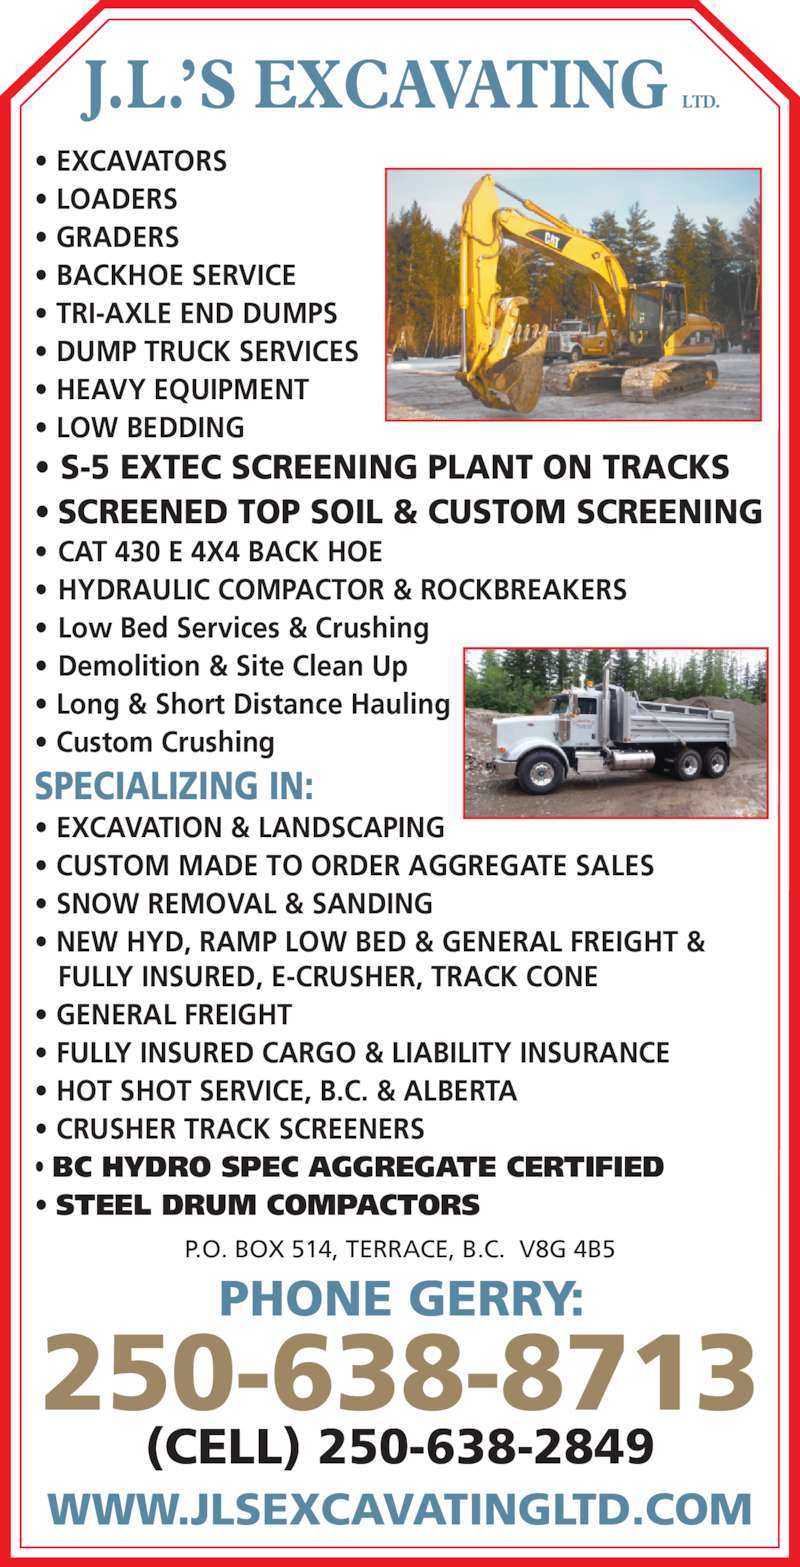 J L's Excavating Ltd (250-638-8713) - Display Ad - • GRADERS • EXCAVATORS • LOADERS • Long & Short Distance Hauling • Custom Crushing SPECIALIZING IN: • EXCAVATION & LANDSCAPING • CUSTOM MADE TO ORDER AGGREGATE SALES • SNOW REMOVAL & SANDING • NEW HYD, RAMP LOW BED & GENERAL FREIGHT &    FULLY INSURED, E-CRUSHER, TRACK CONE • GENERAL FREIGHT • FULLY INSURED CARGO & LIABILITY INSURANCE • HOT SHOT SERVICE, B.C. & ALBERTA • CRUSHER TRACK SCREENERS • BC HYDRO SPEC AGGREGATE CERTIFIED • STEEL DRUM COMPACTORS PHONE GERRY: 250-638-8713 (CELL) 250-638-2849 WWW.JLSEXCAVATINGLTD.COM P.O. BOX 514, TERRACE, B.C.  V8G 4B5 J.L.'S EXCAVATING LTD. • EXCAVATORS • LOADERS • GRADERS • BACKHOE SERVICE • TRI-AXLE END DUMPS • DUMP TRUCK SERVICES • HEAVY EQUIPMENT • LOW BEDDING • S-5 EXTEC SCREENING PLANT ON TRACKS • SCREENED TOP SOIL & CUSTOM SCREENING • CAT 430 E 4X4 BACK HOE • HYDRAULIC COMPACTOR & ROCKBREAKERS • Low Bed Services & Crushing • Long & Short Distance Hauling • Custom Crushing SPECIALIZING IN: • EXCAVATION & LANDSCAPING • CUSTOM MADE TO ORDER AGGREGATE SALES • SNOW REMOVAL & SANDING • NEW HYD, RAMP LOW BED & GENERAL FREIGHT &    FULLY INSURED, E-CRUSHER, TRACK CONE • GENERAL FREIGHT • FULLY INSURED CARGO & LIABILITY INSURANCE • HOT SHOT SERVICE, B.C. & ALBERTA • CRUSHER TRACK SCREENERS • BC HYDRO SPEC AGGREGATE CERTIFIED • STEEL DRUM COMPACTORS PHONE GERRY: 250-638-8713 (CELL) 250-638-2849 WWW.JLSEXCAVATINGLTD.COM P.O. BOX 514, TERRACE, B.C.  V8G 4B5 J.L.'S EXCAVATING LTD. • Demolition & Site Clean Up • BACKHOE SERVICE • TRI-AXLE END DUMPS • DUMP TRUCK SERVICES • HEAVY EQUIPMENT • LOW BEDDING • S-5 EXTEC SCREENING PLANT ON TRACKS • SCREENED TOP SOIL & CUSTOM SCREENING • CAT 430 E 4X4 BACK HOE • HYDRAULIC COMPACTOR & ROCKBREAKERS • Low Bed Services & Crushing • Demolition & Site Clean Up